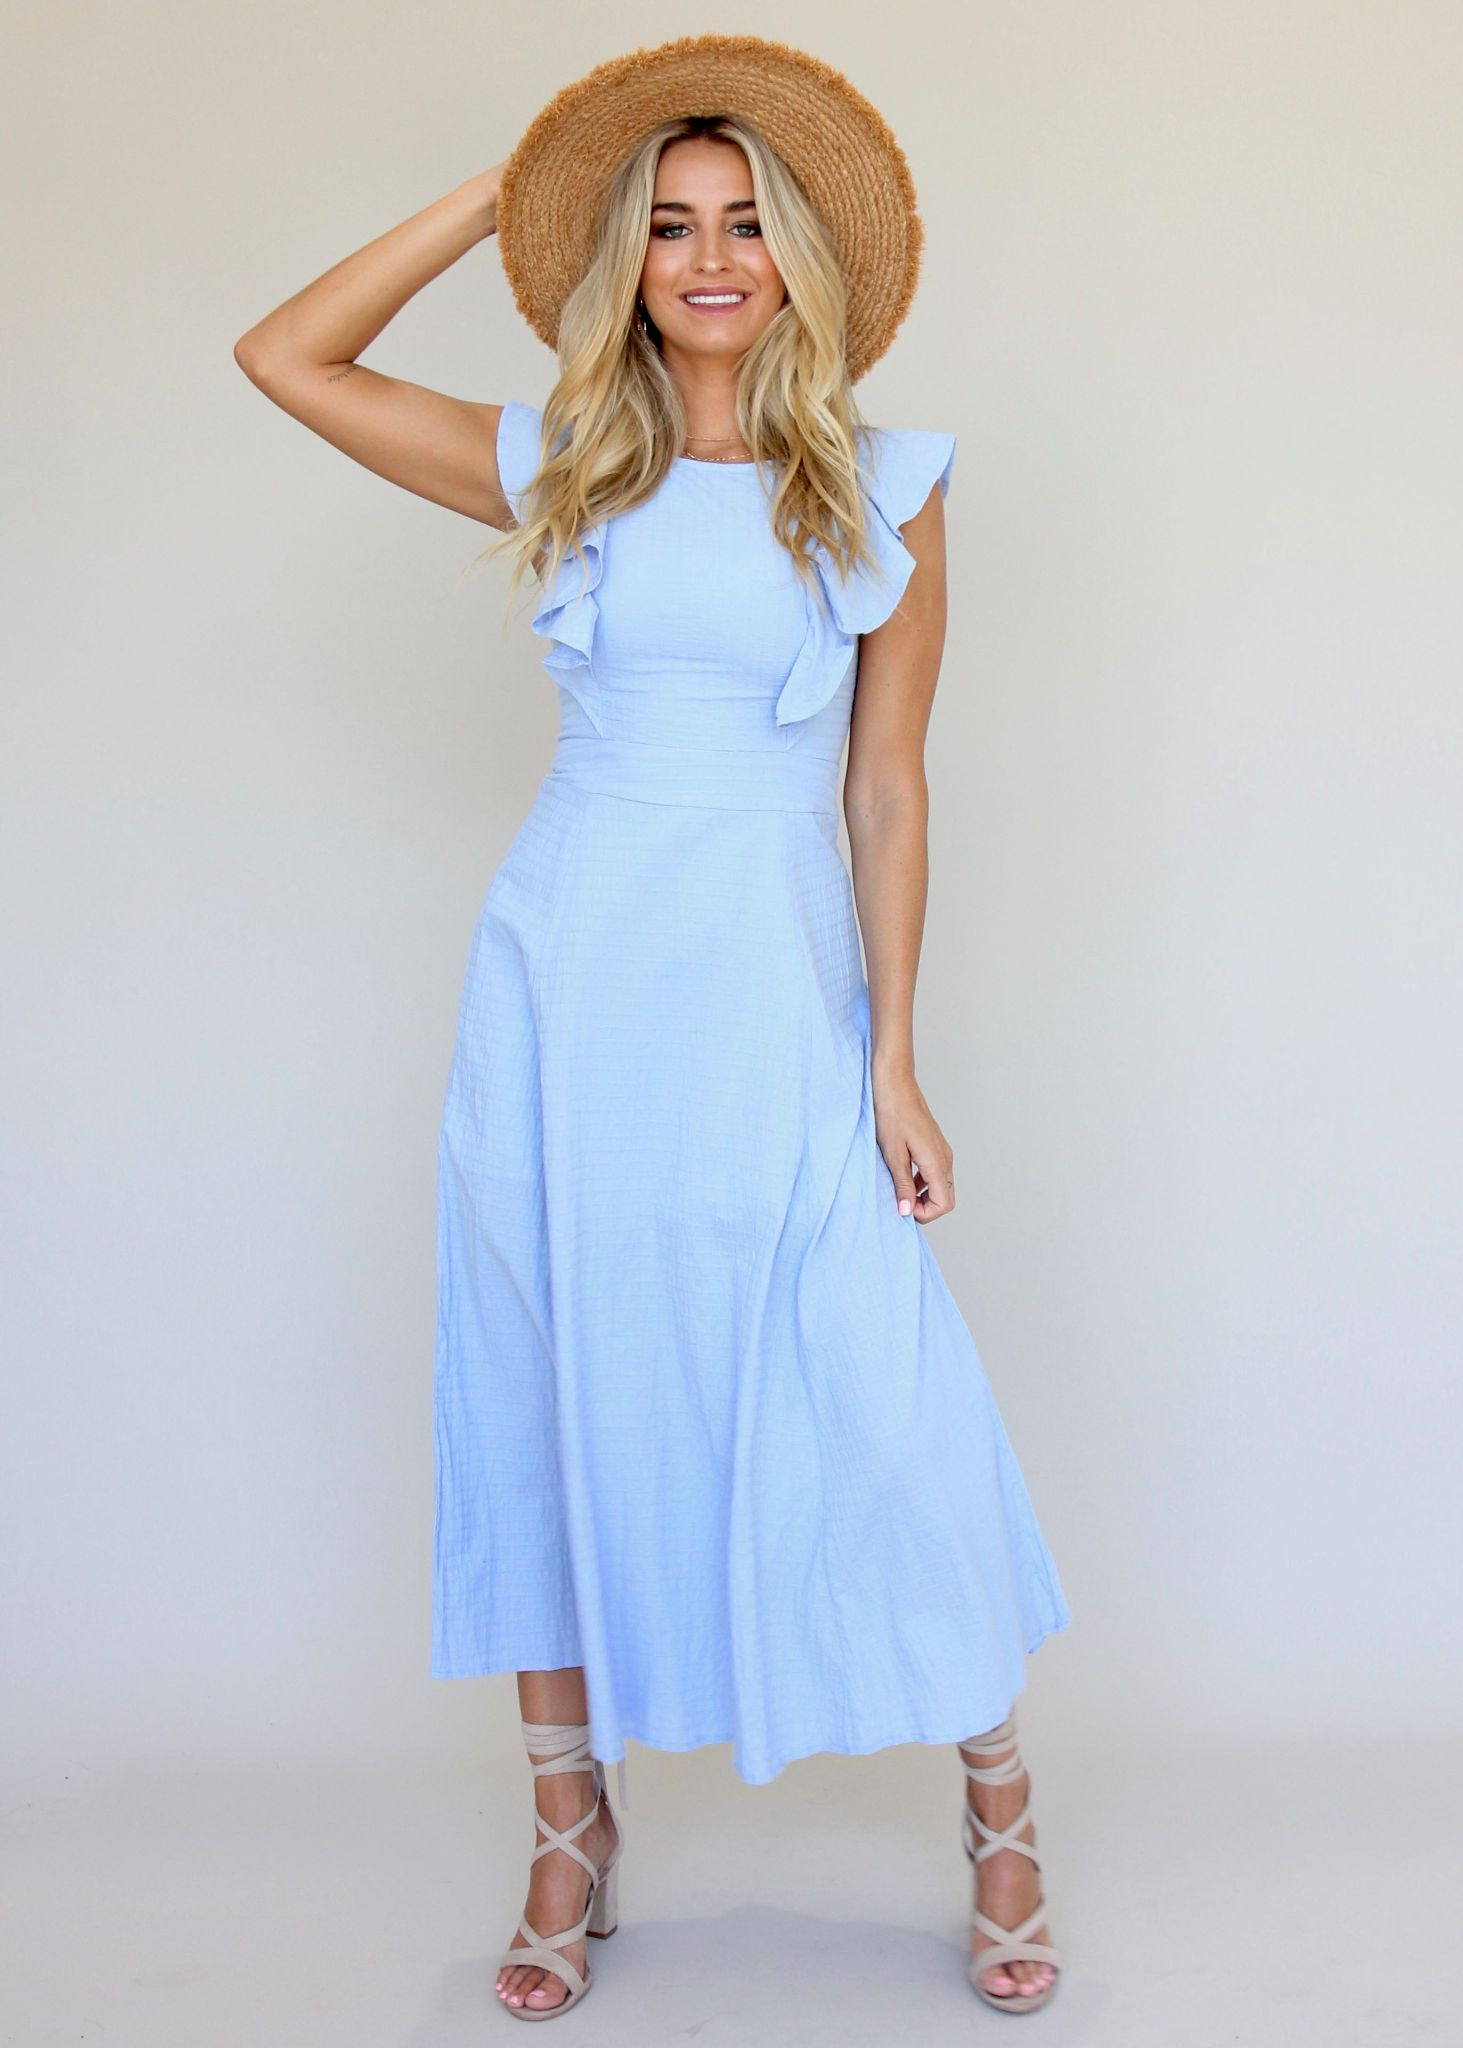 Body Of Work Dress - Steel Blue